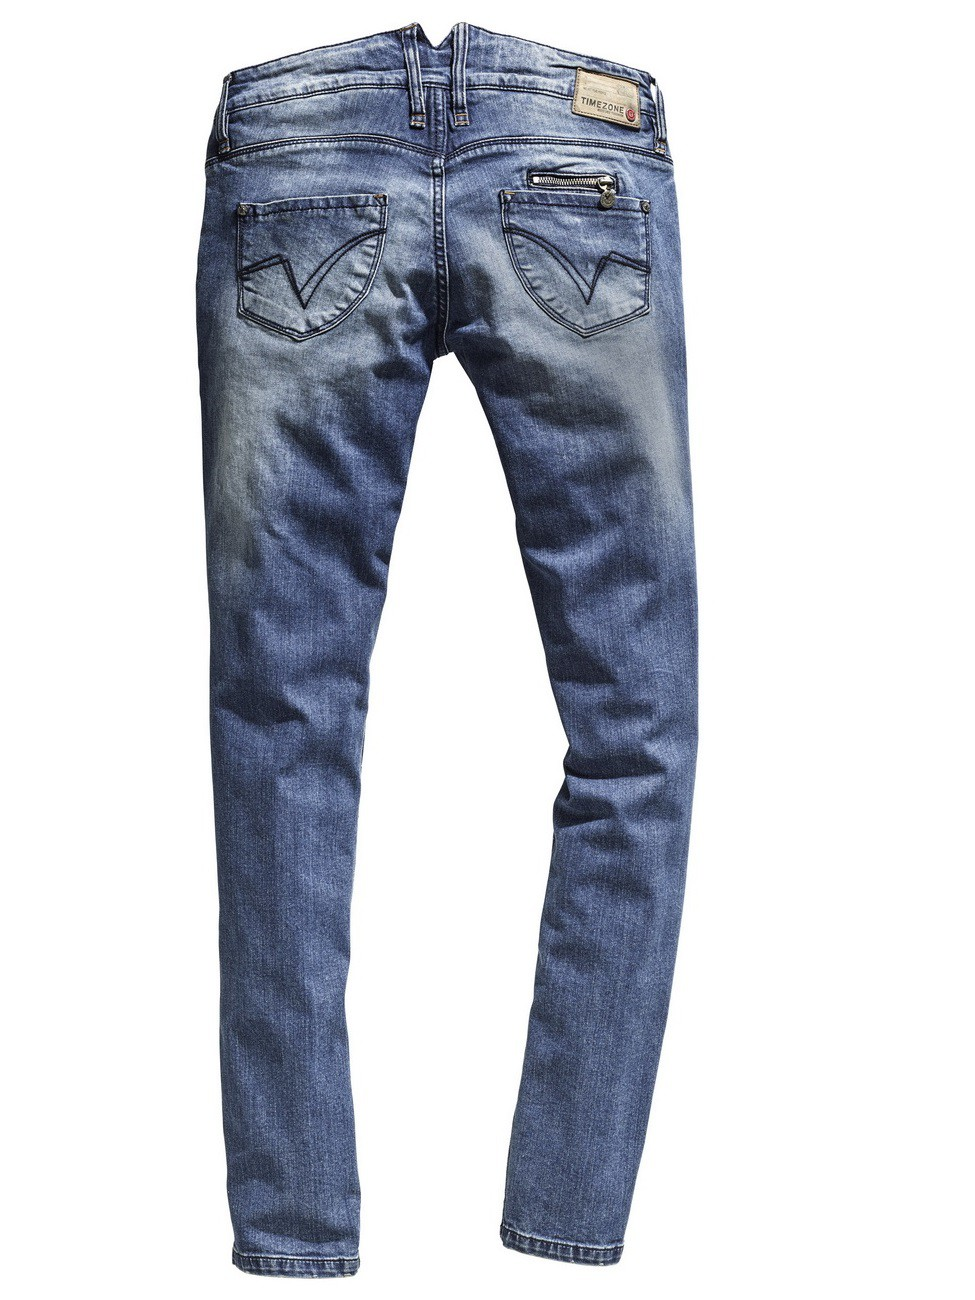 Timezone Damen Jeans New KairinaTZ - Slim Fit - Blau - Rock Blue Wash